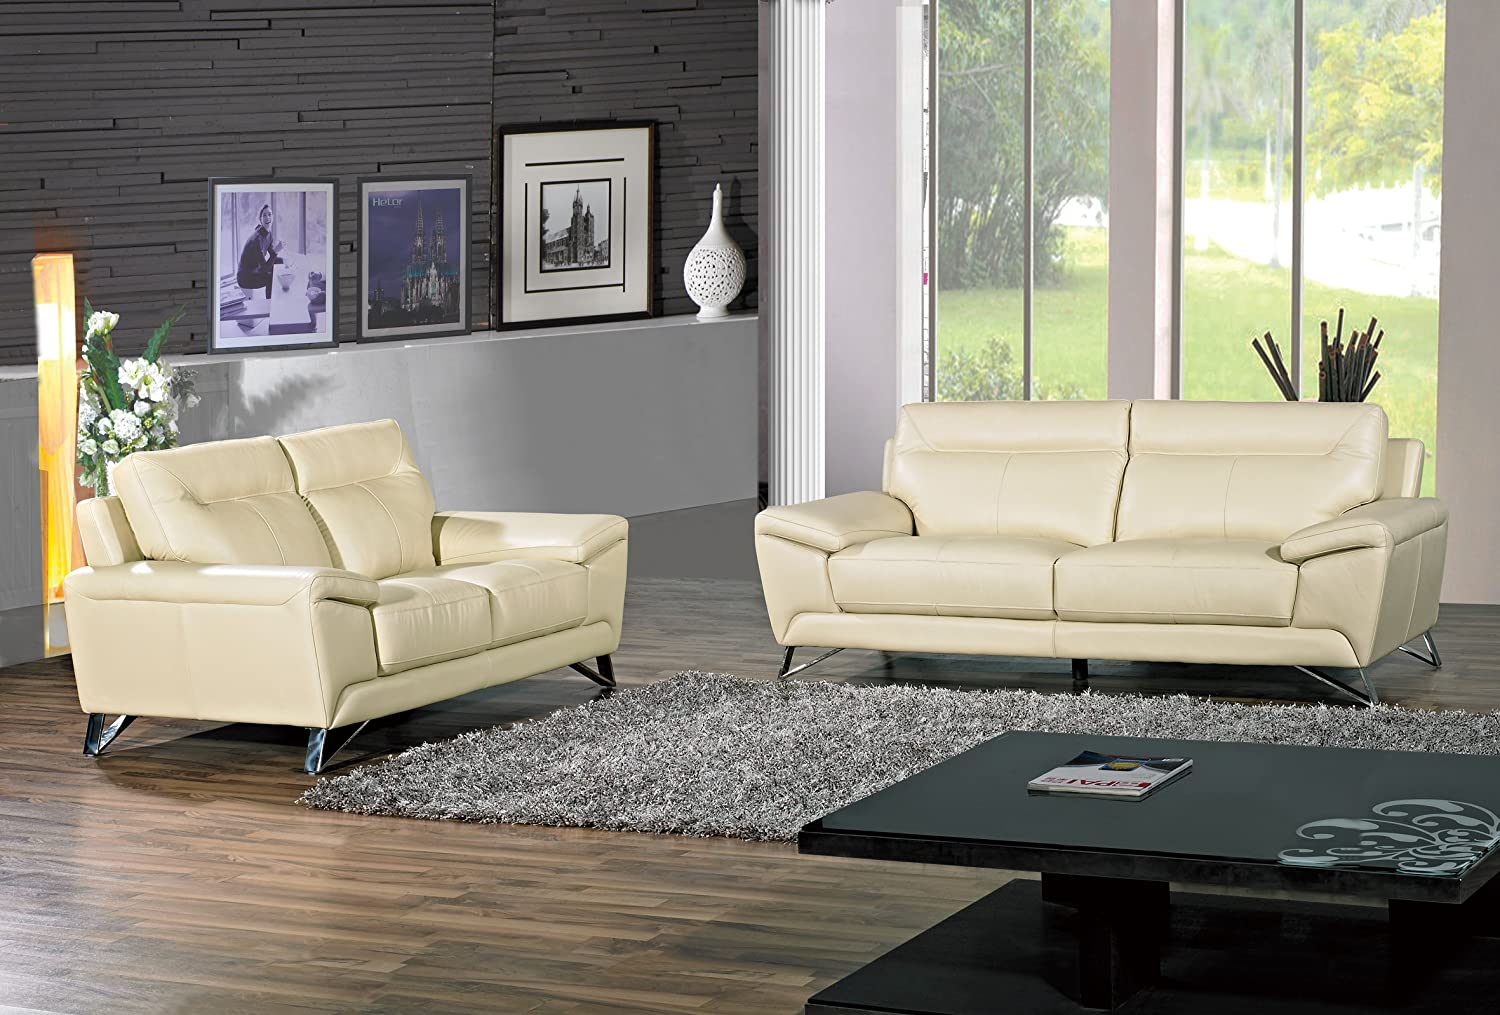 Cortesi Home Phoenix Genuine Leather Sofa & Loveseat Set - Cream